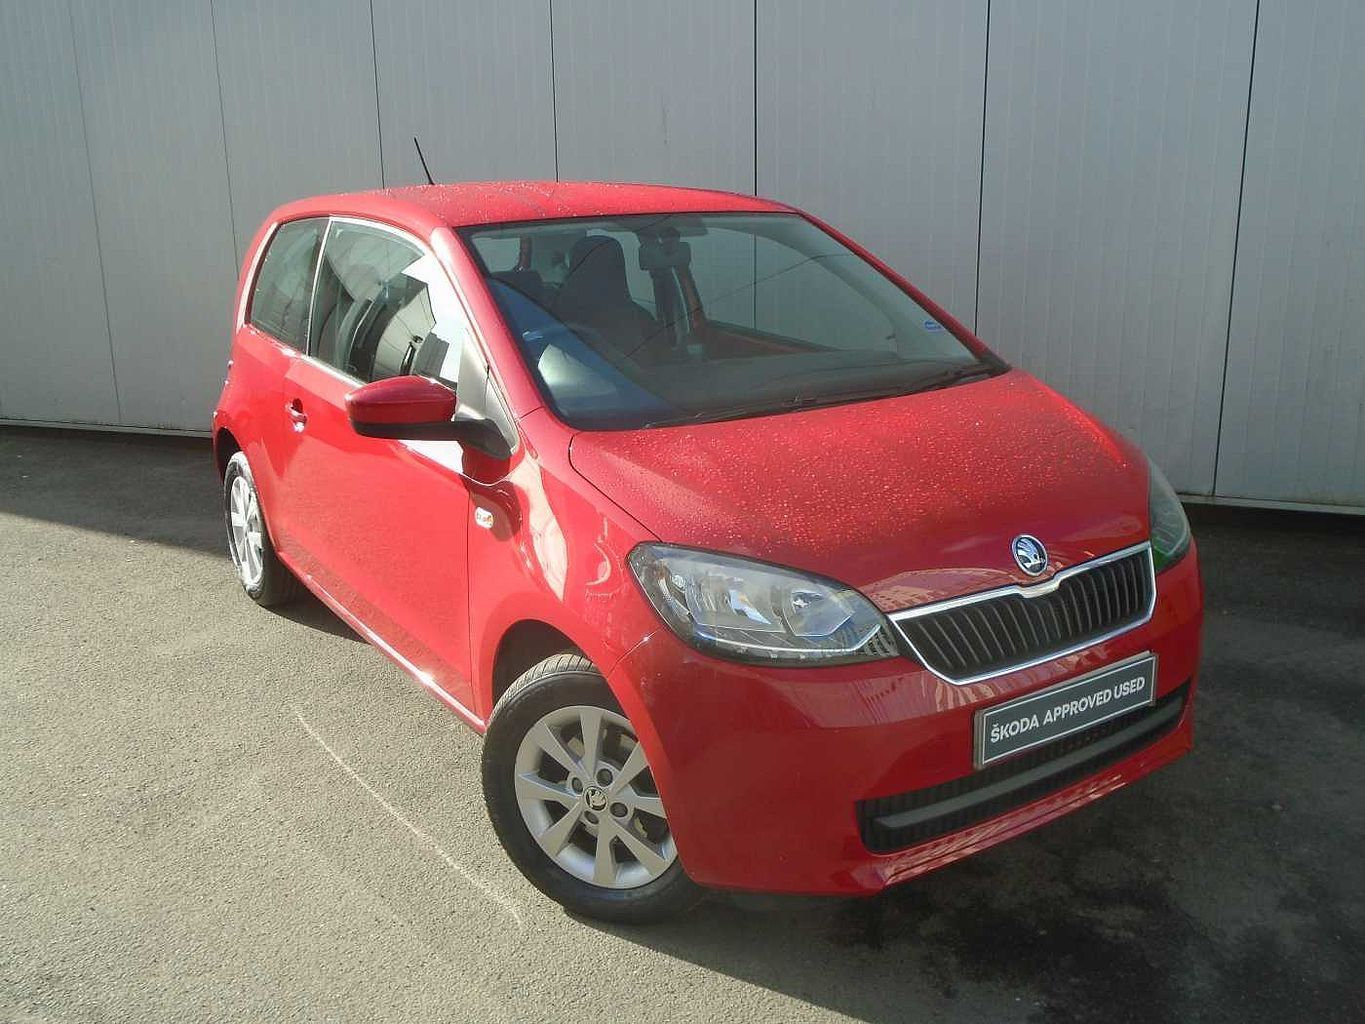 ŠKODA Citigo 1.0 MPI (60PS) SE Hatchback 3-Dr